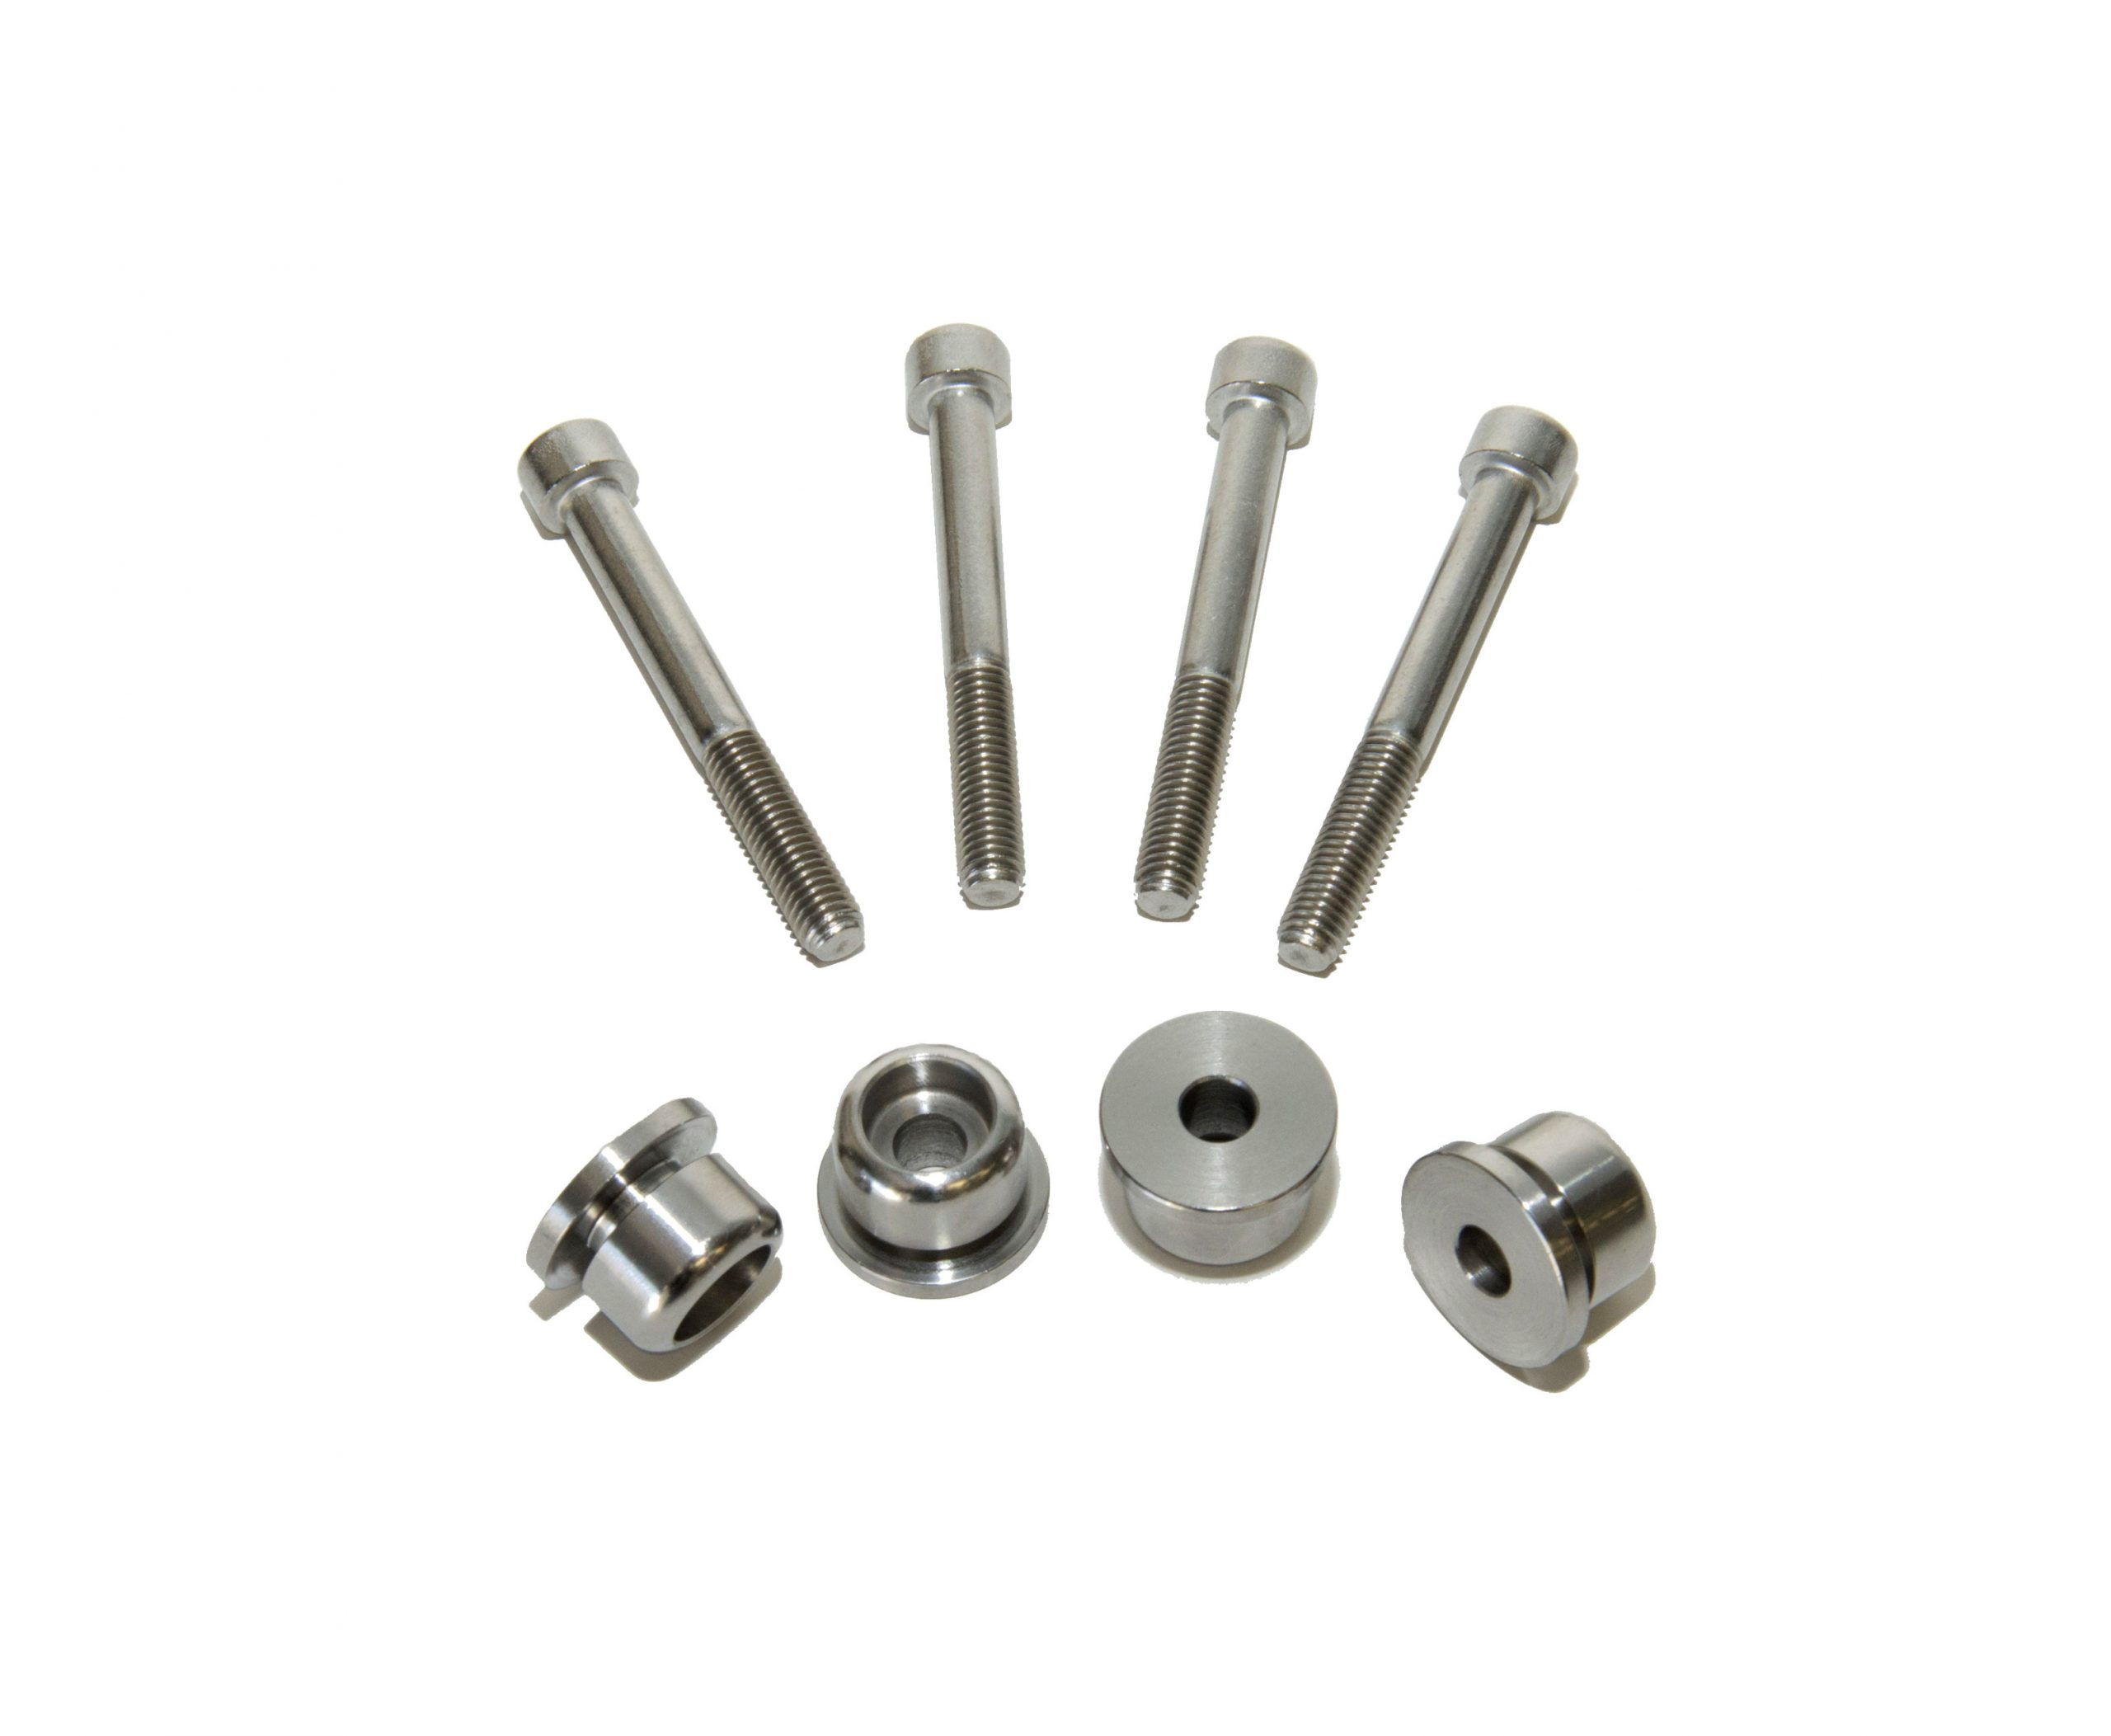 Easy Brackets hardware for 2017 and earlier Fat Boy